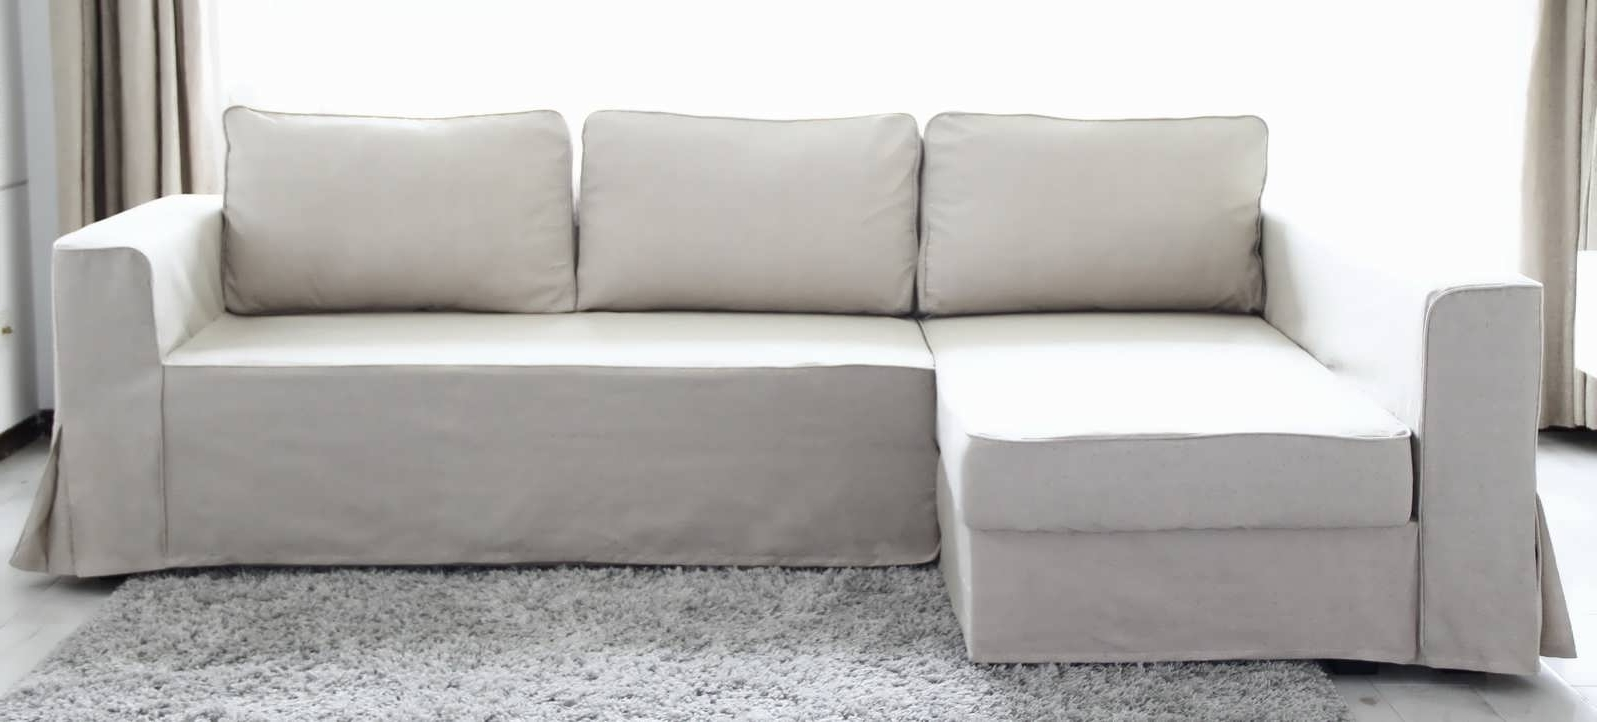 Slipcovers For Sectional Sofas With Chaise Within Most Recent Sofa : Sofa Covers Sleeper Sofa Slipcover Chair Slipcovers (View 12 of 15)